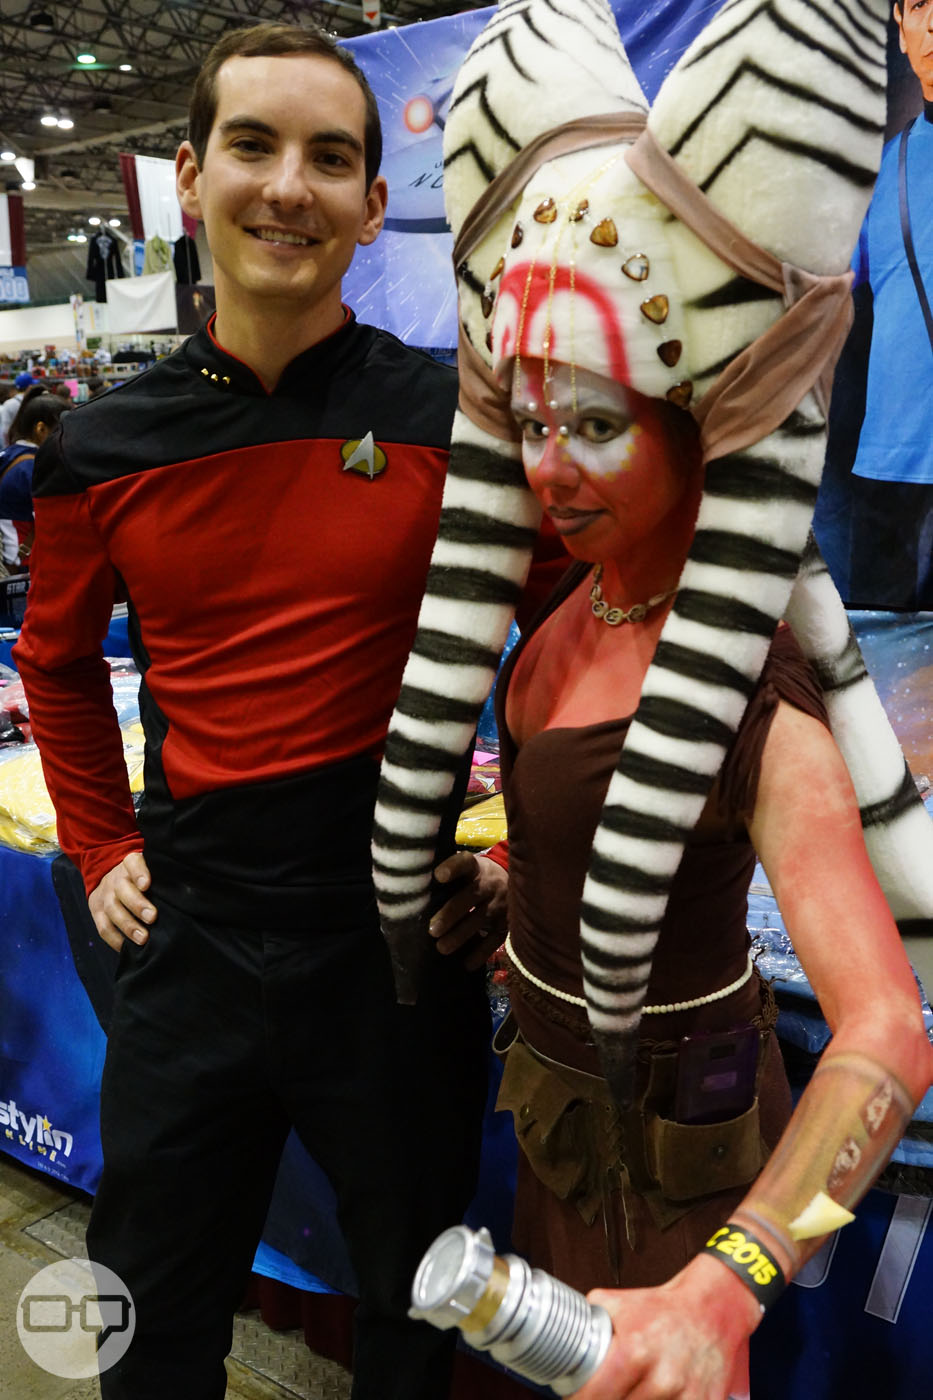 Planet-Comicon-2015-ProNerd-Cosplay-D4-9